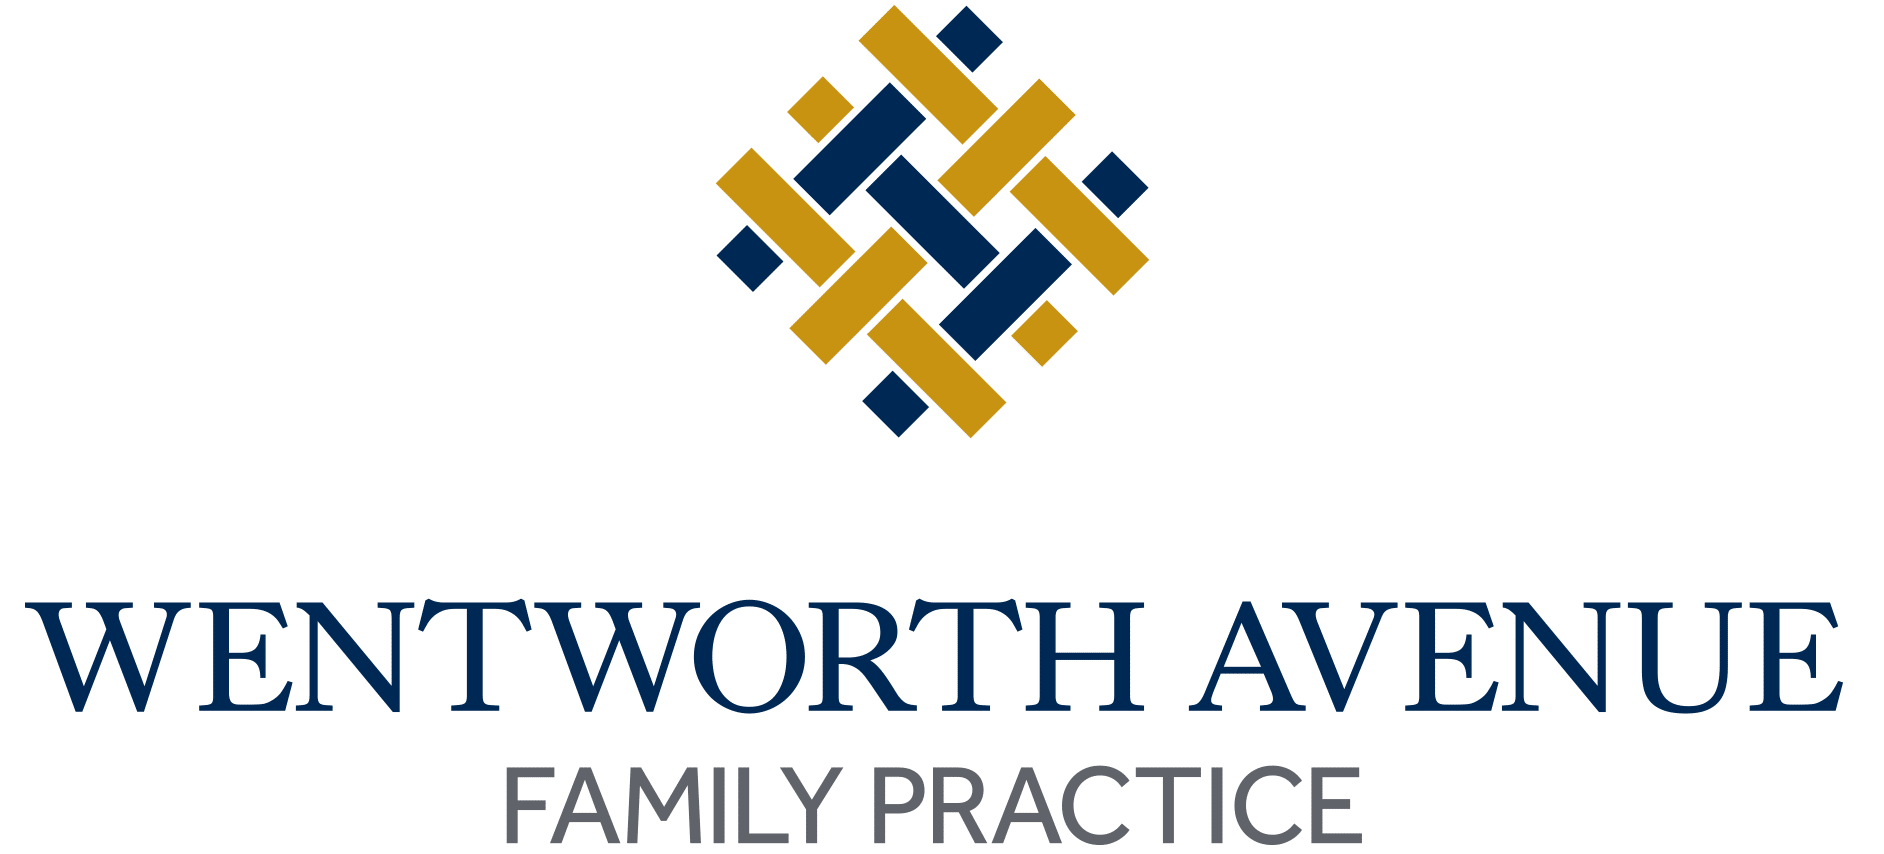 Wentworth Avenue Family Practice South Canberra